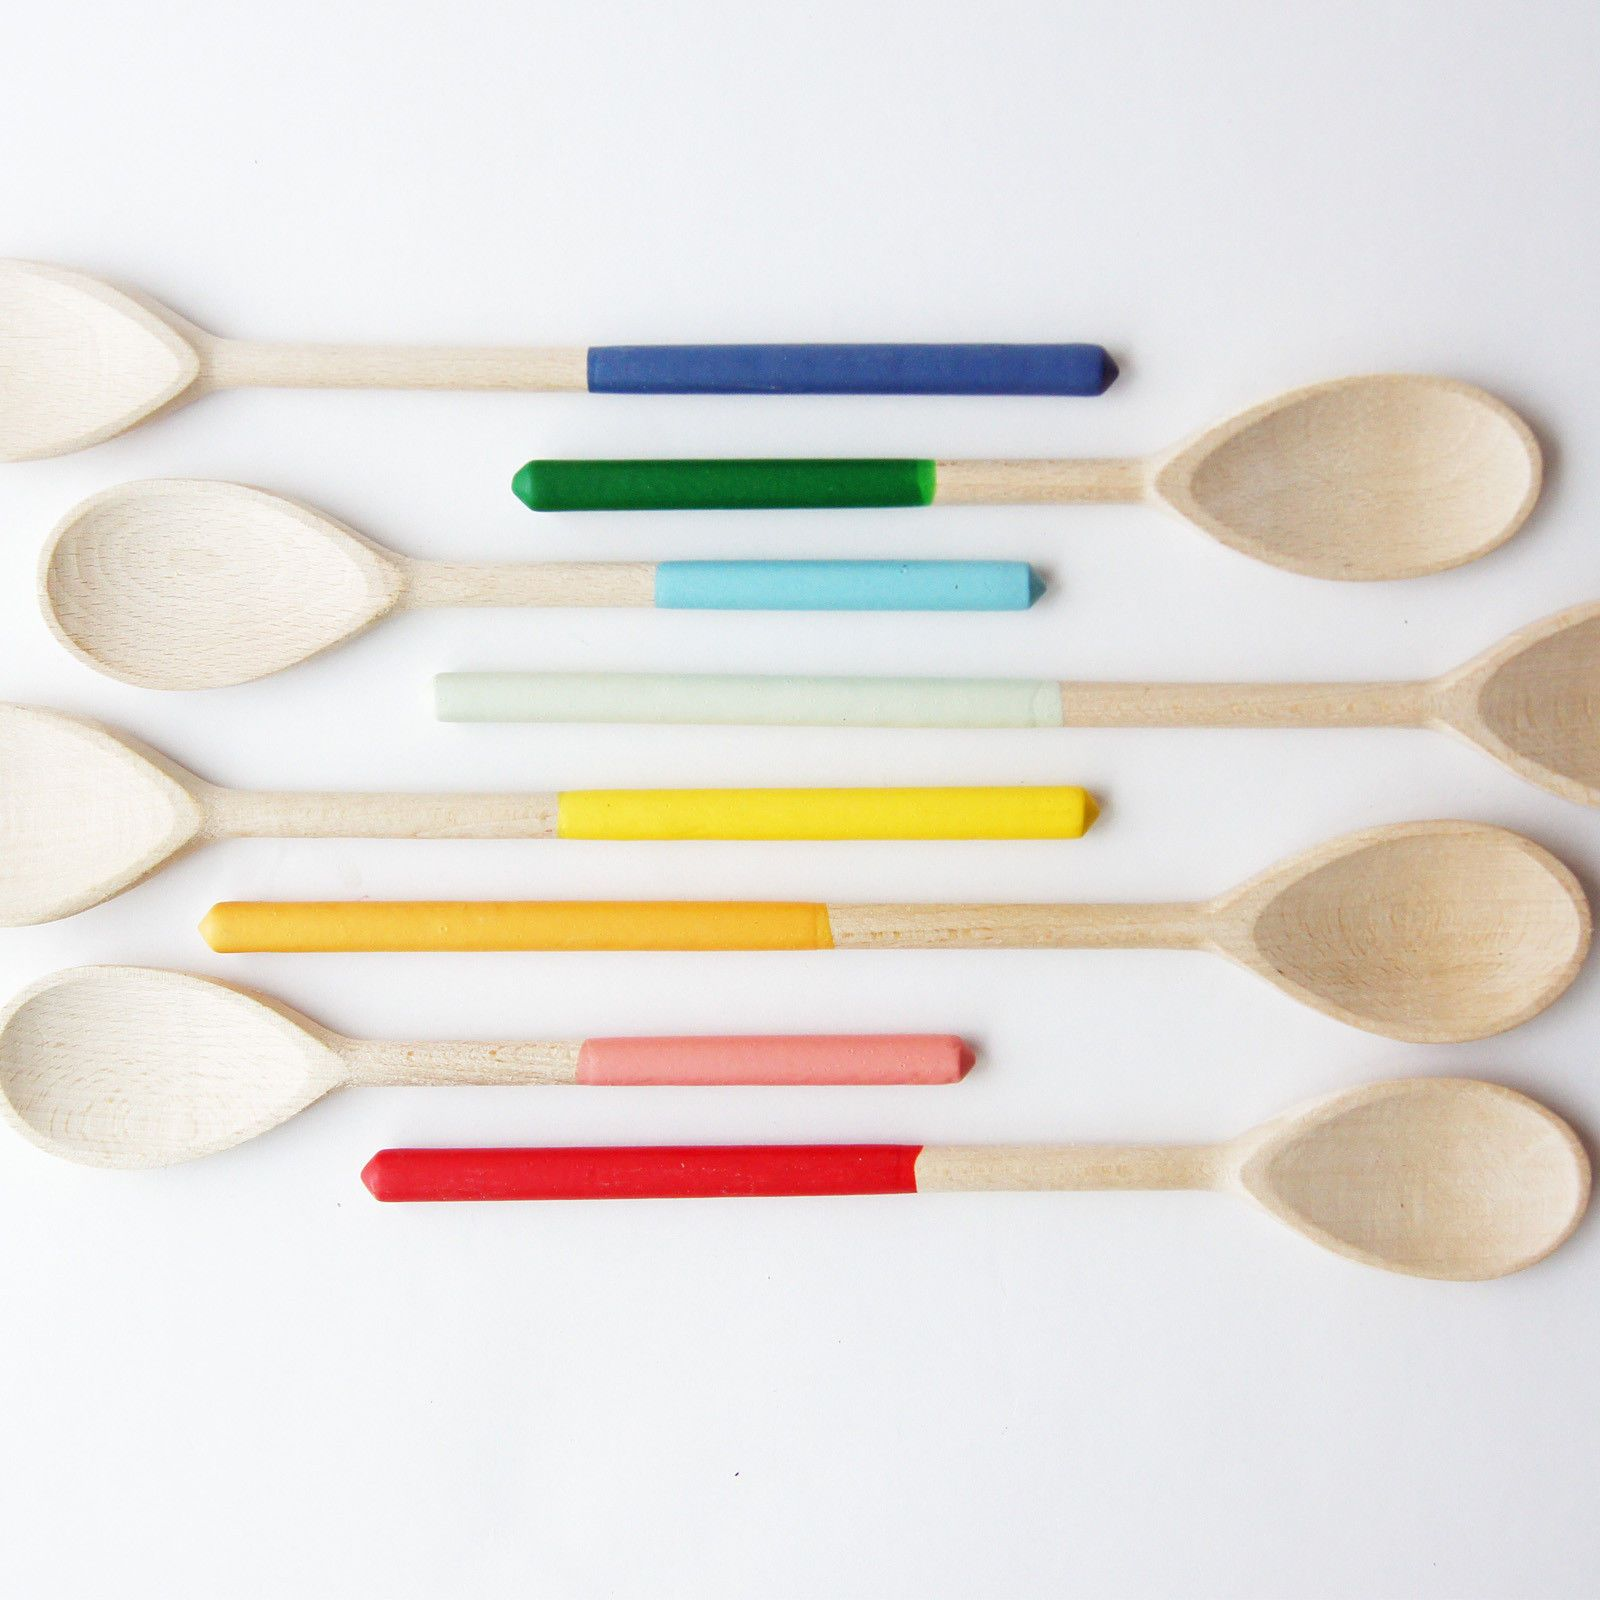 Wind u willow home set of wooden spoons in multiple colors